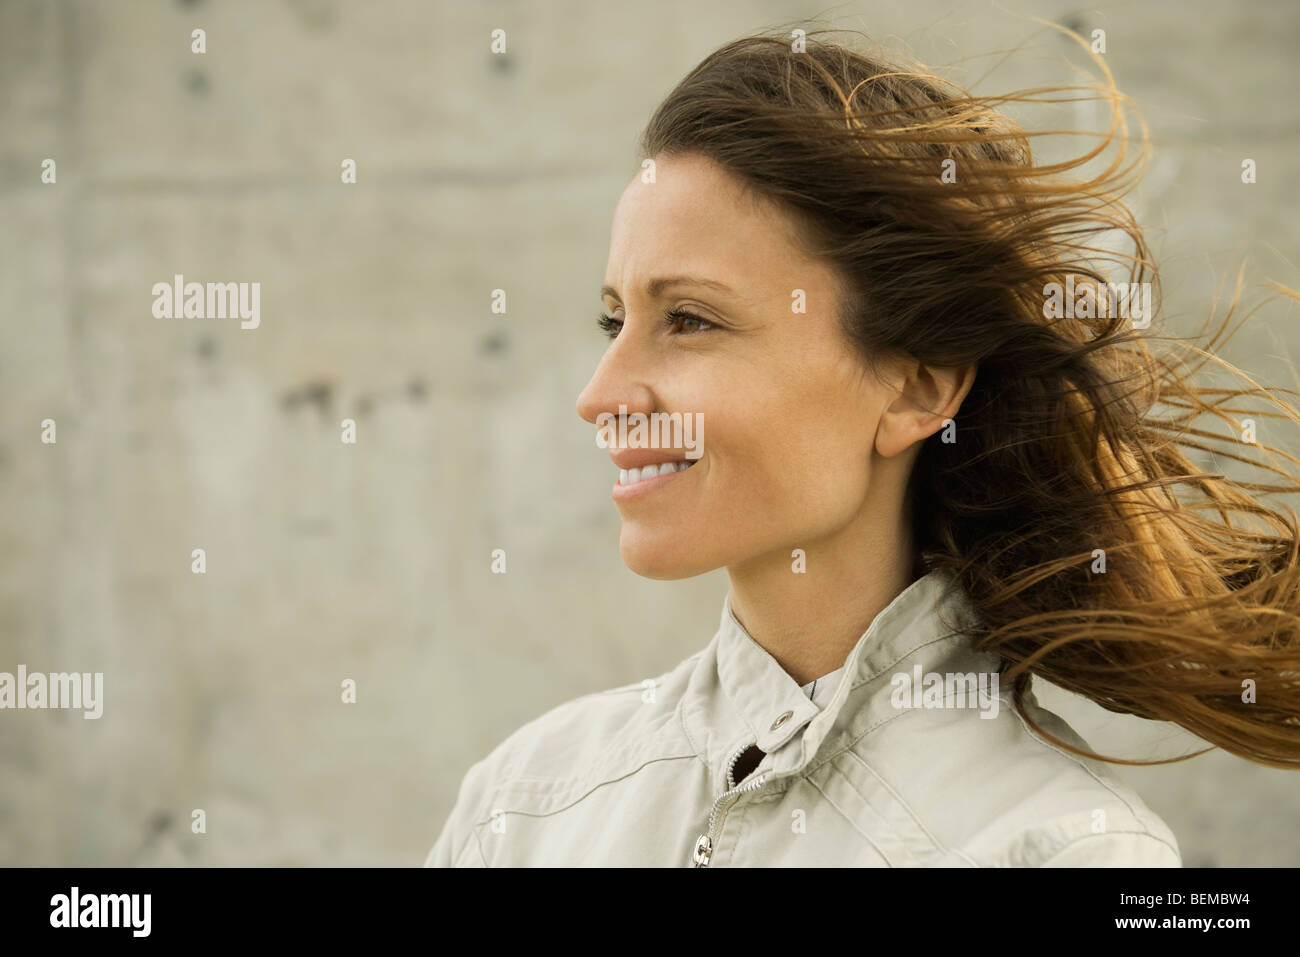 Woman looking away, hair tousled by breeze, portrait - Stock Image